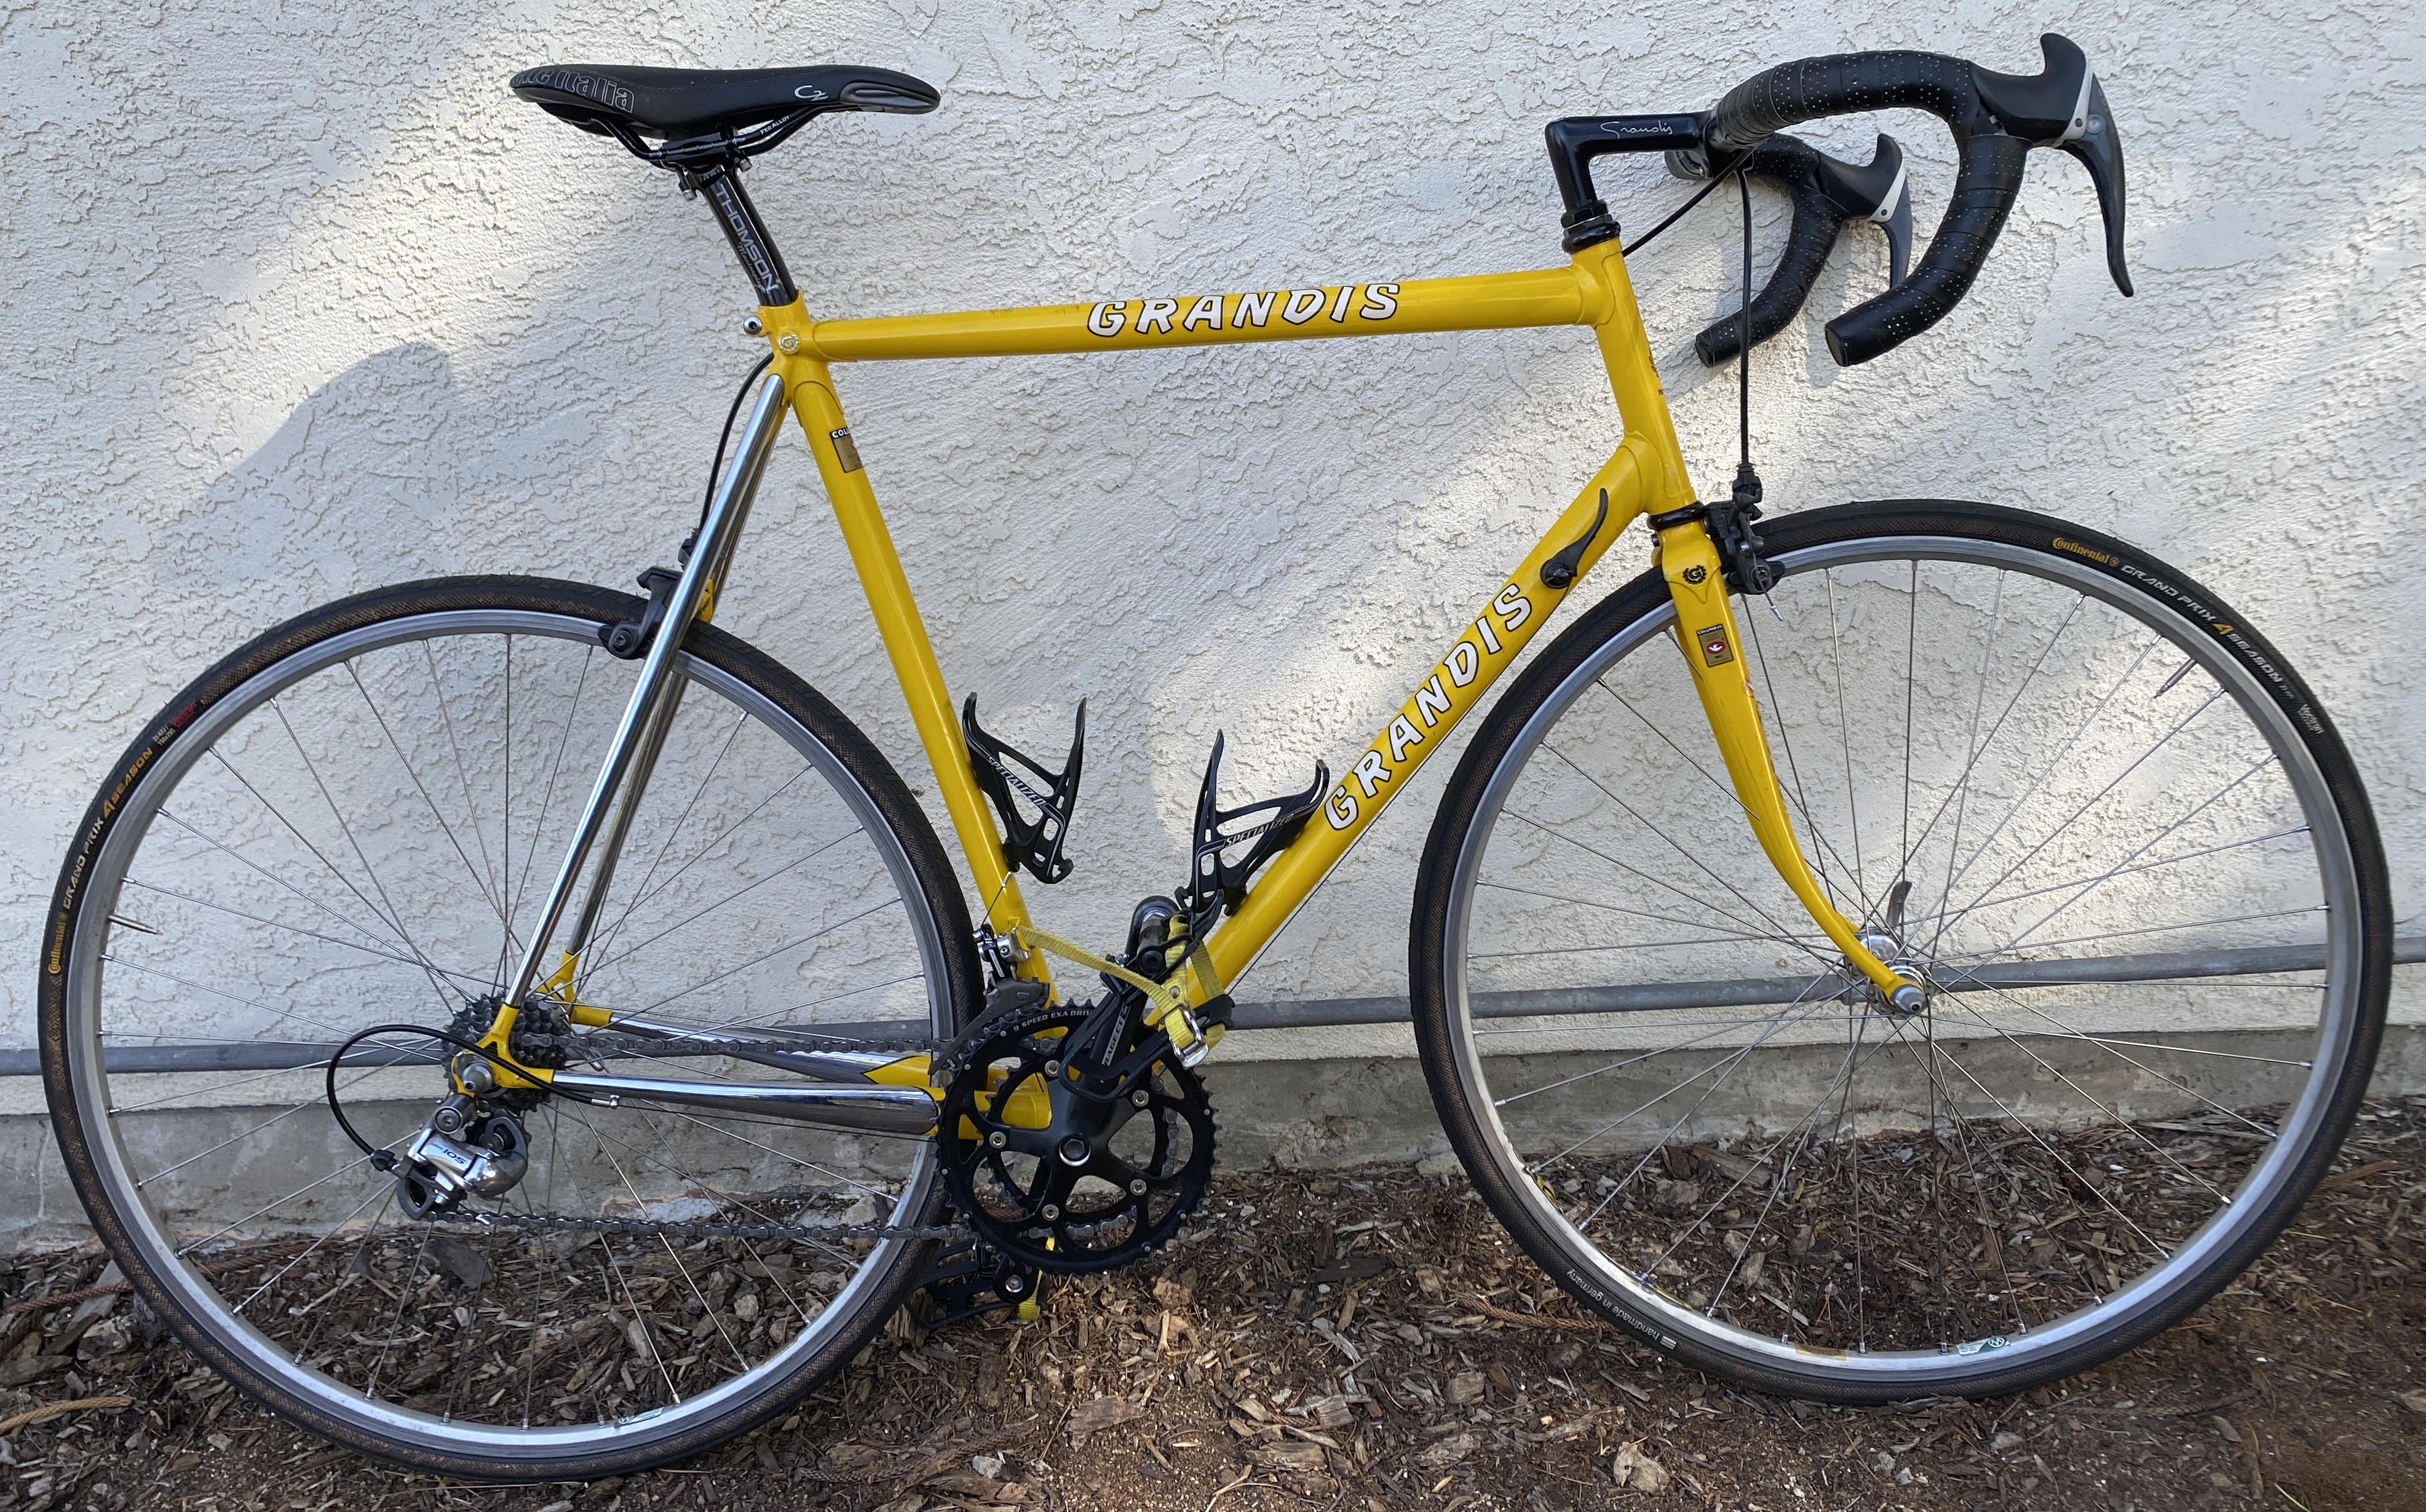 dating cinelli handlebars